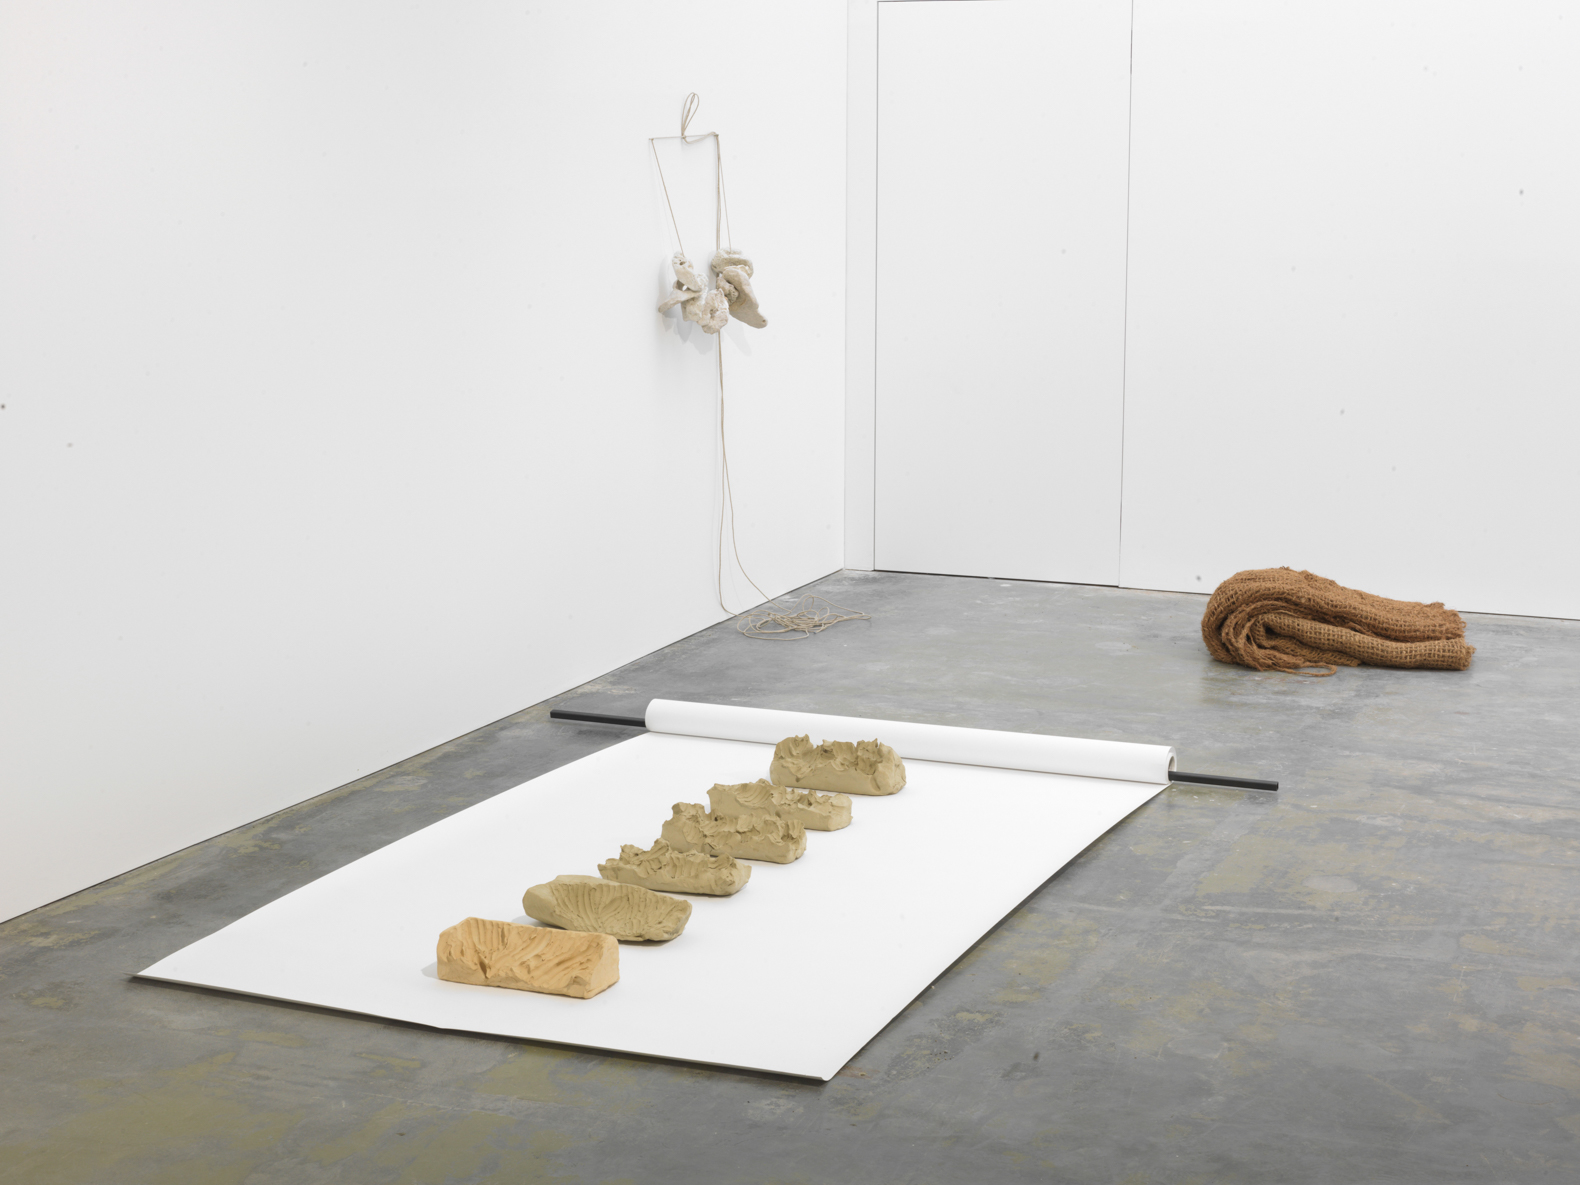 Object and Environment, installation view, Galerie Guido W. Baudach, Berlin, 2014